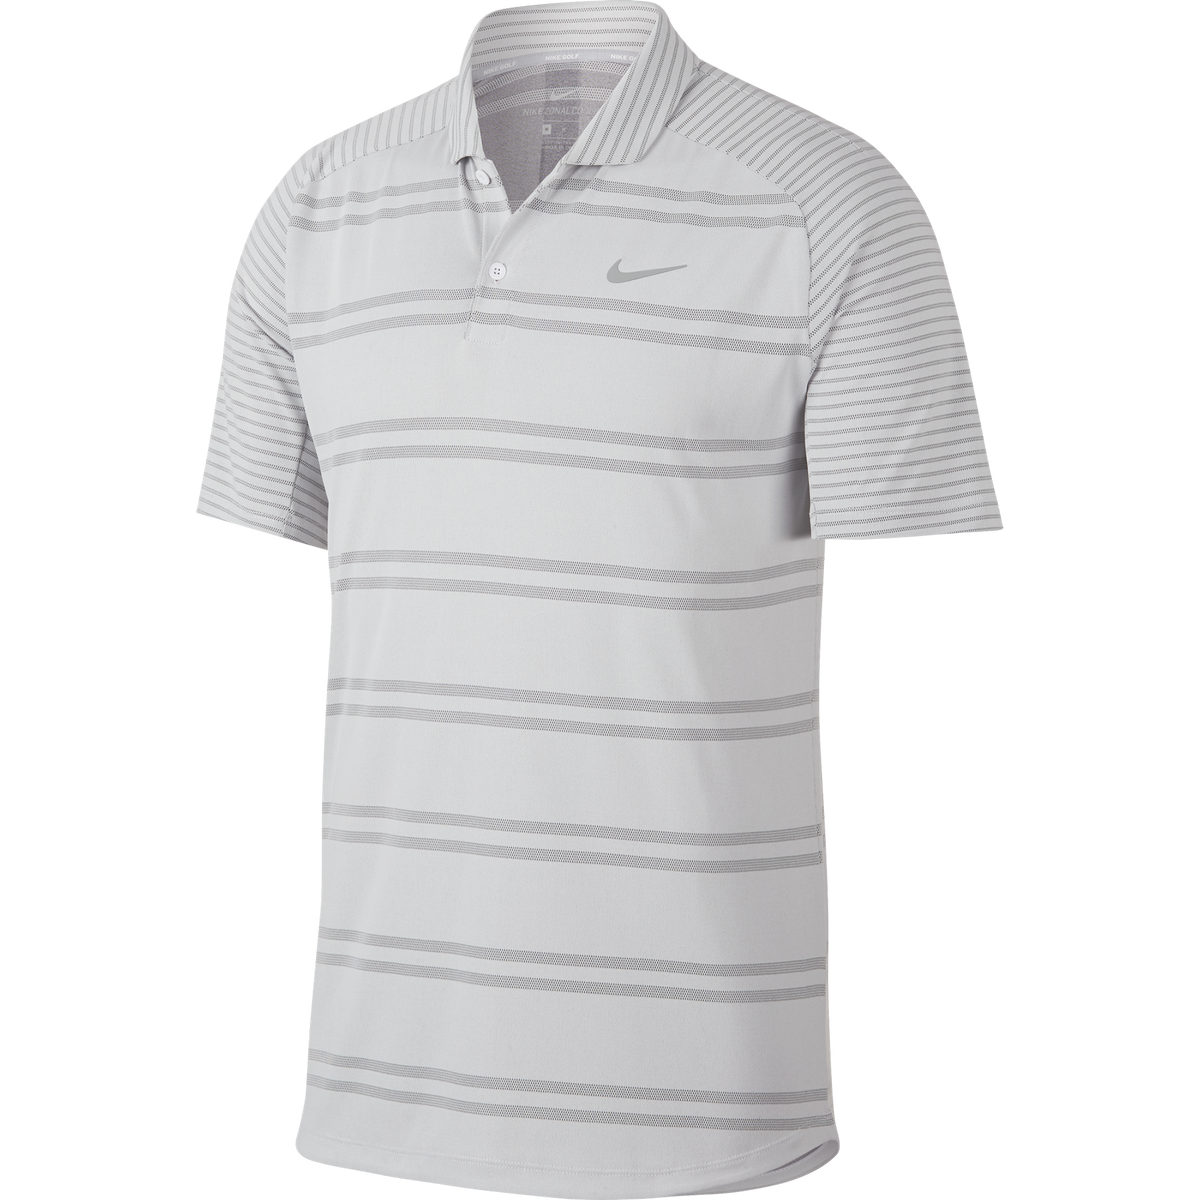 3dc64163d4 Nike Zonal Cooling Striped Polo   PGA TOUR Superstore